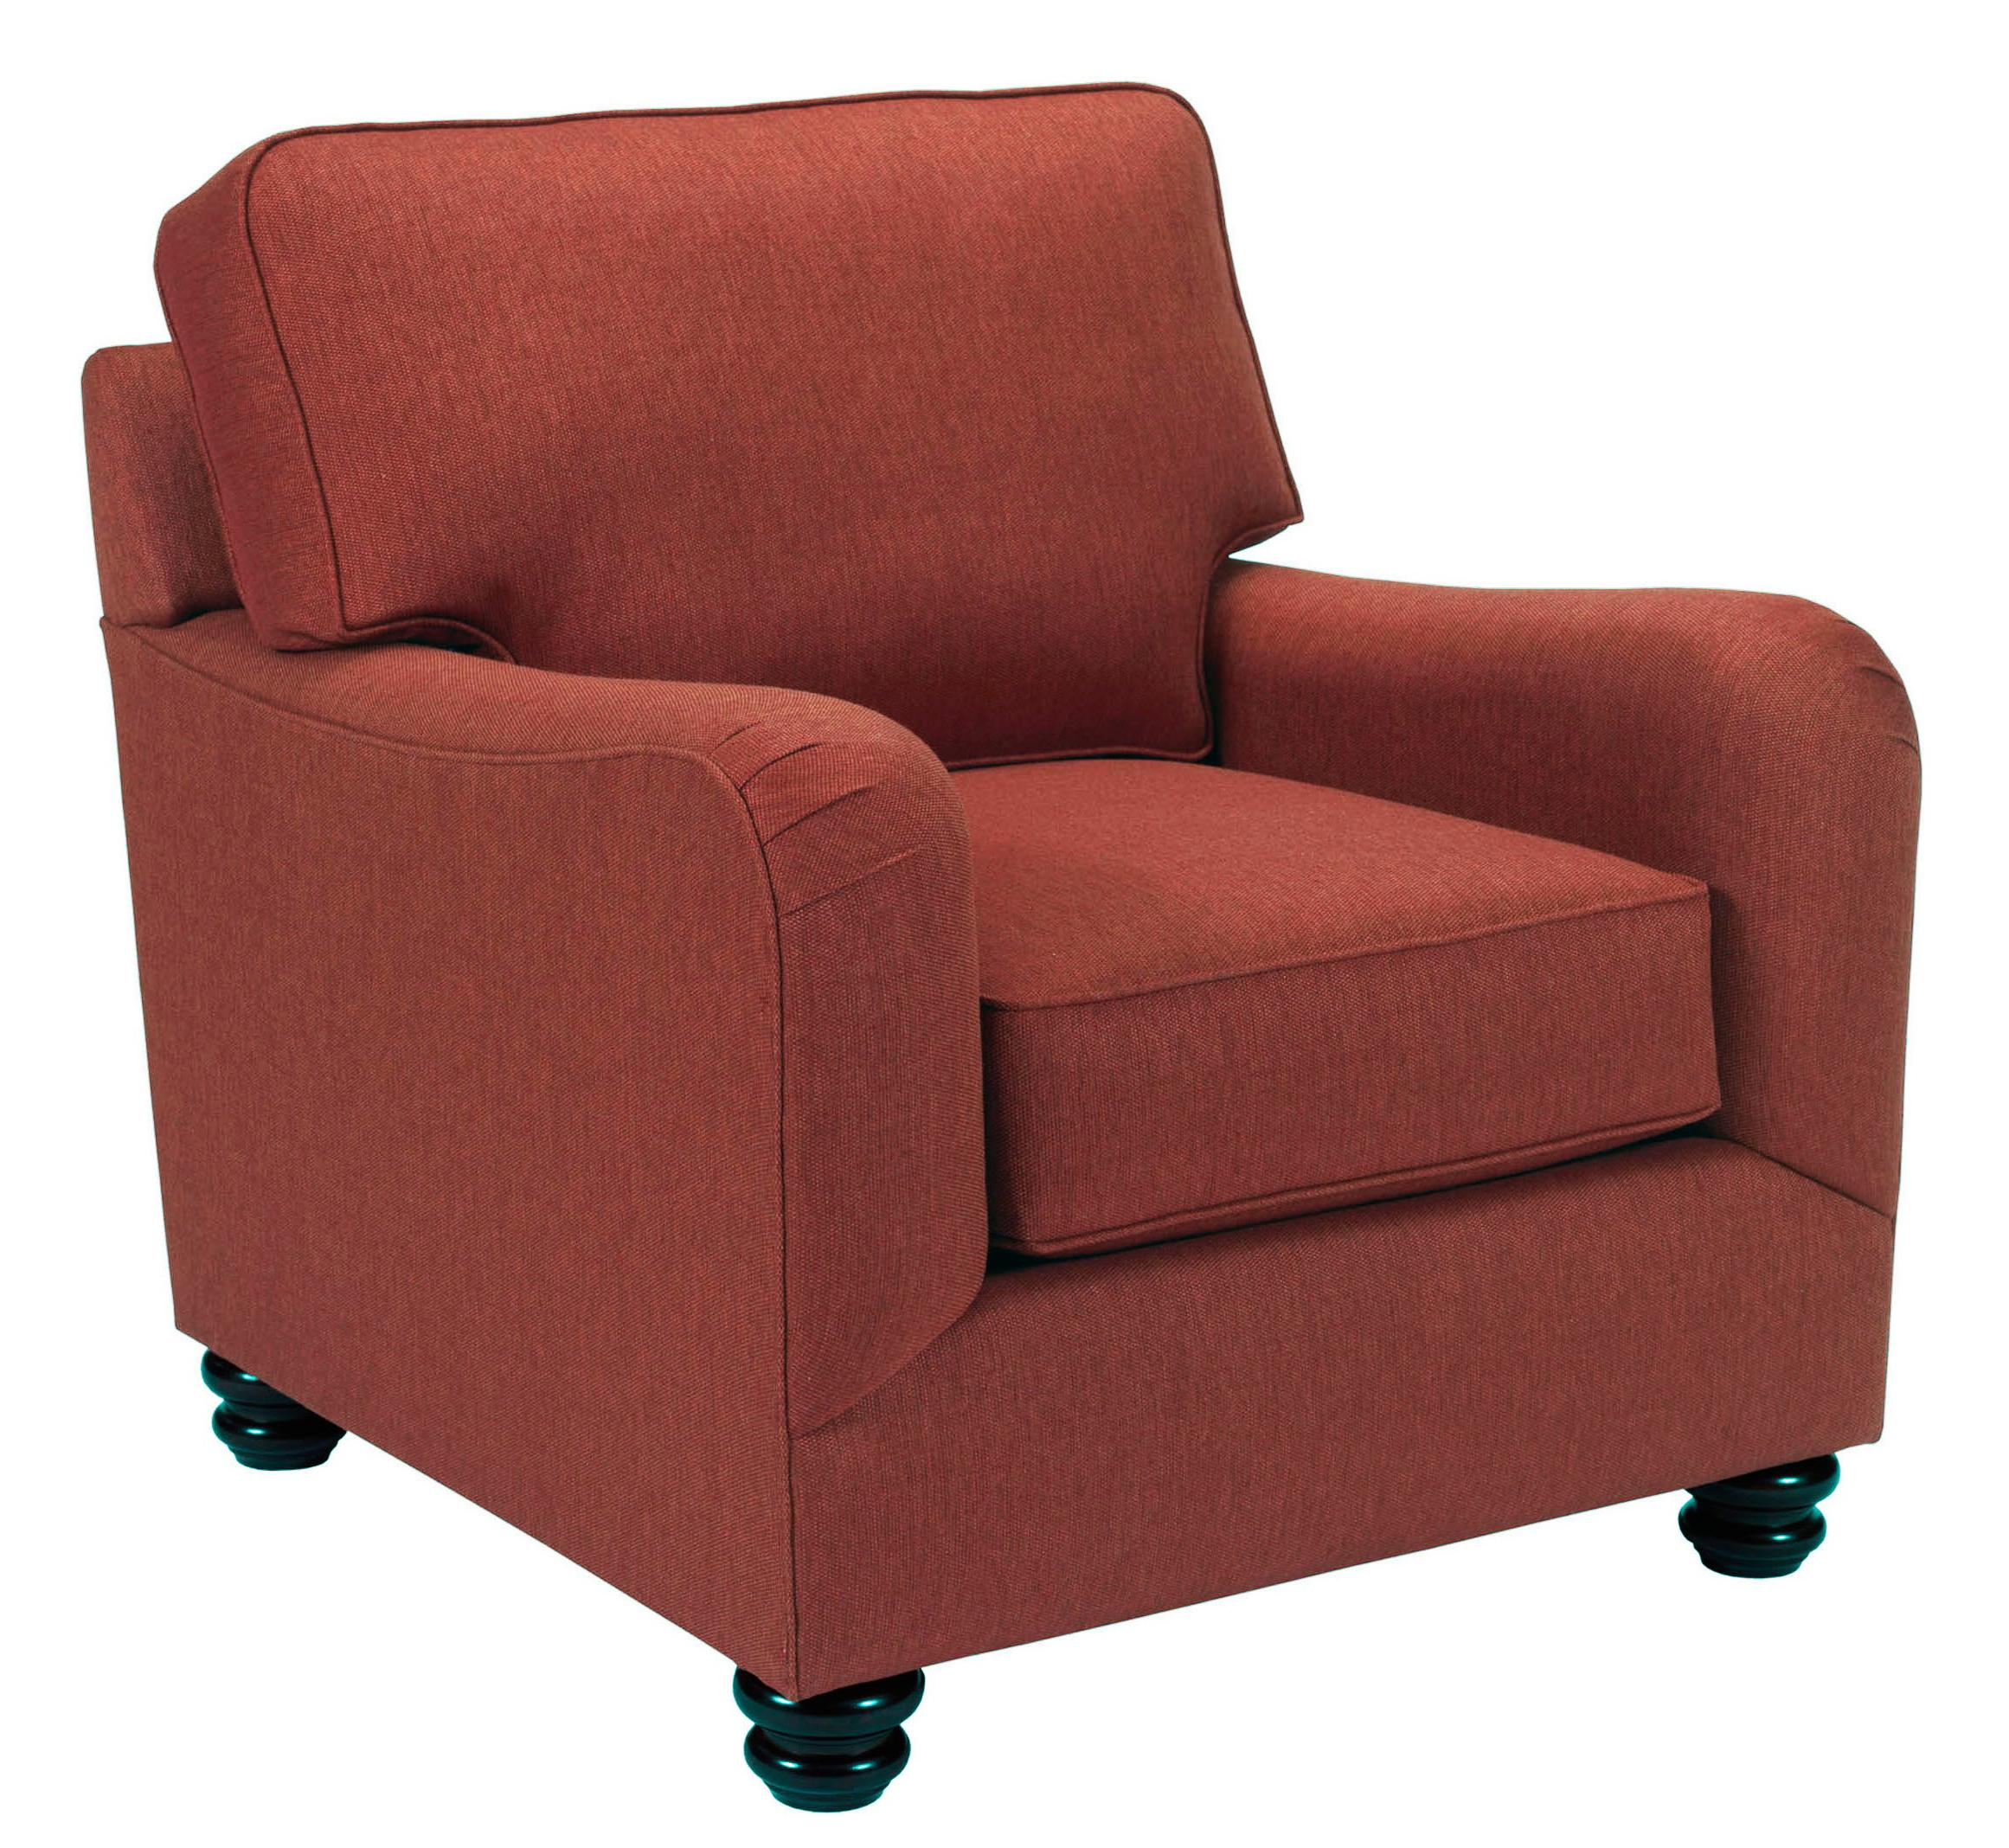 Broyhill Furniture Parker Chair - Item Number: 3746-0